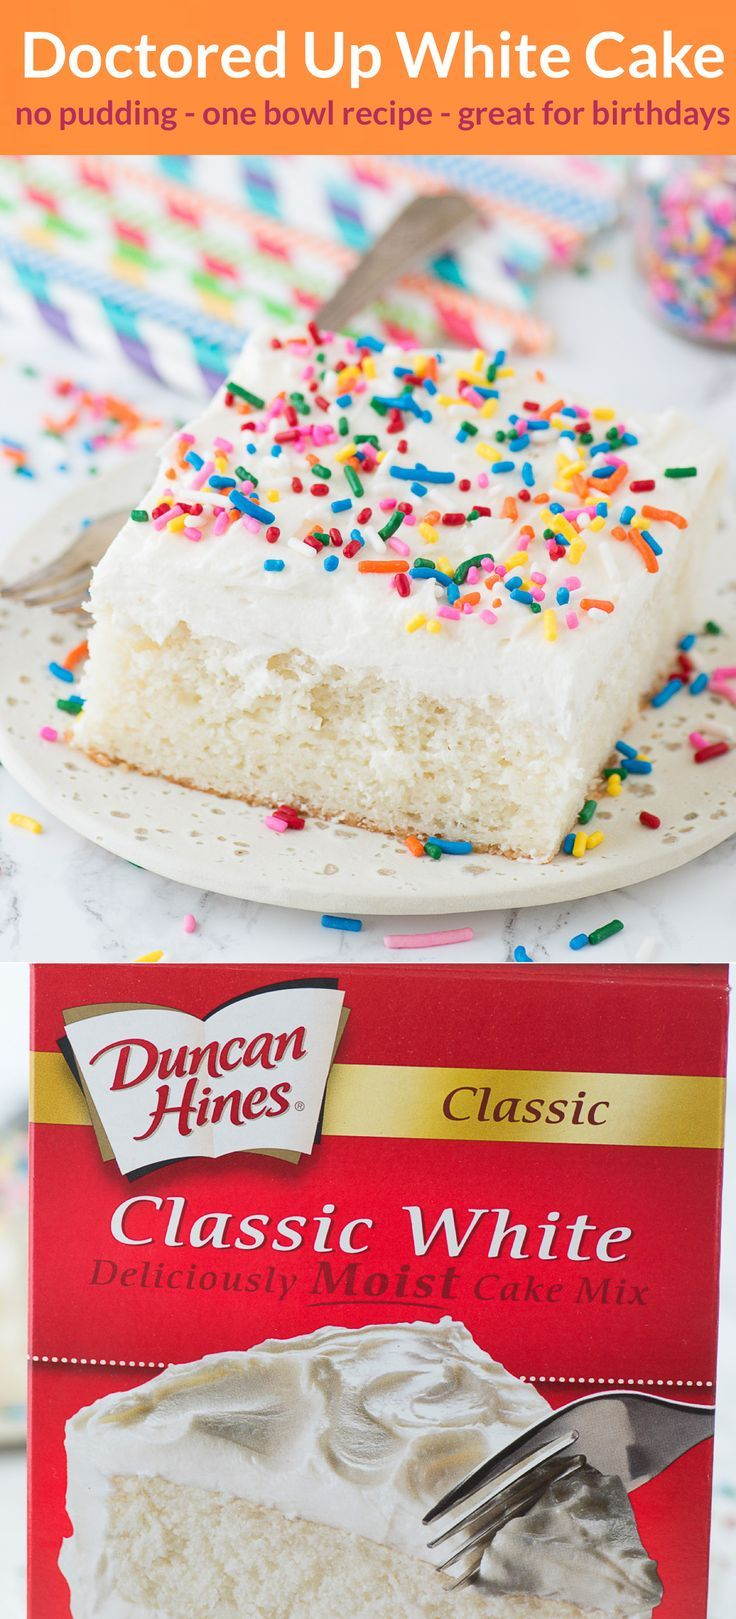 Our Family Loves This Doctored Up White Cake Mix Recipe The Cake Turns Out So Moist And Flavorful Gets Tons Of Co Cake Mix Recipes Cake Mix Desserts Cake Mix